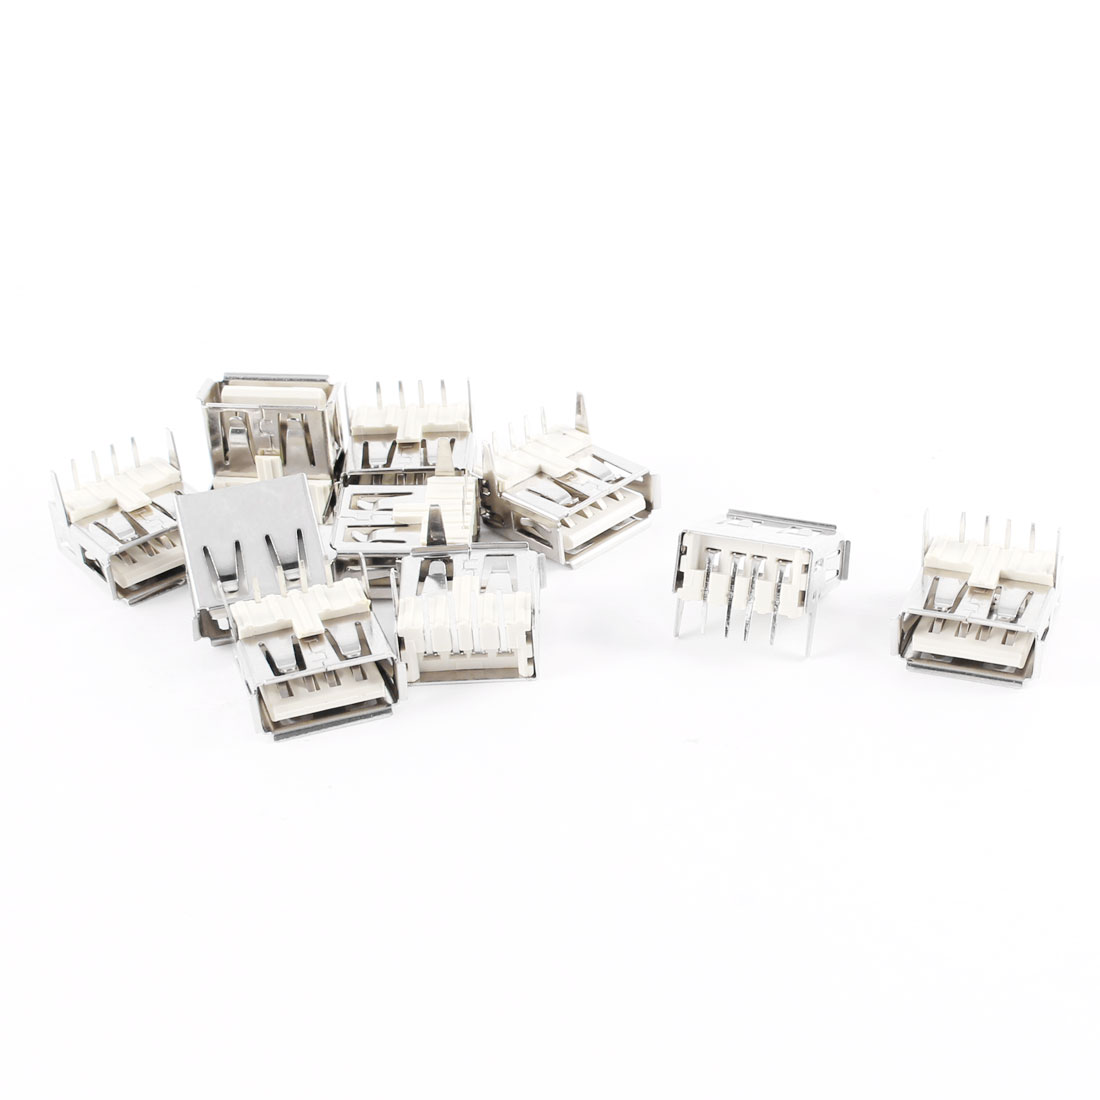 USB A Type Female Right Angle PCB Mount Jack Connector 10 Pcs